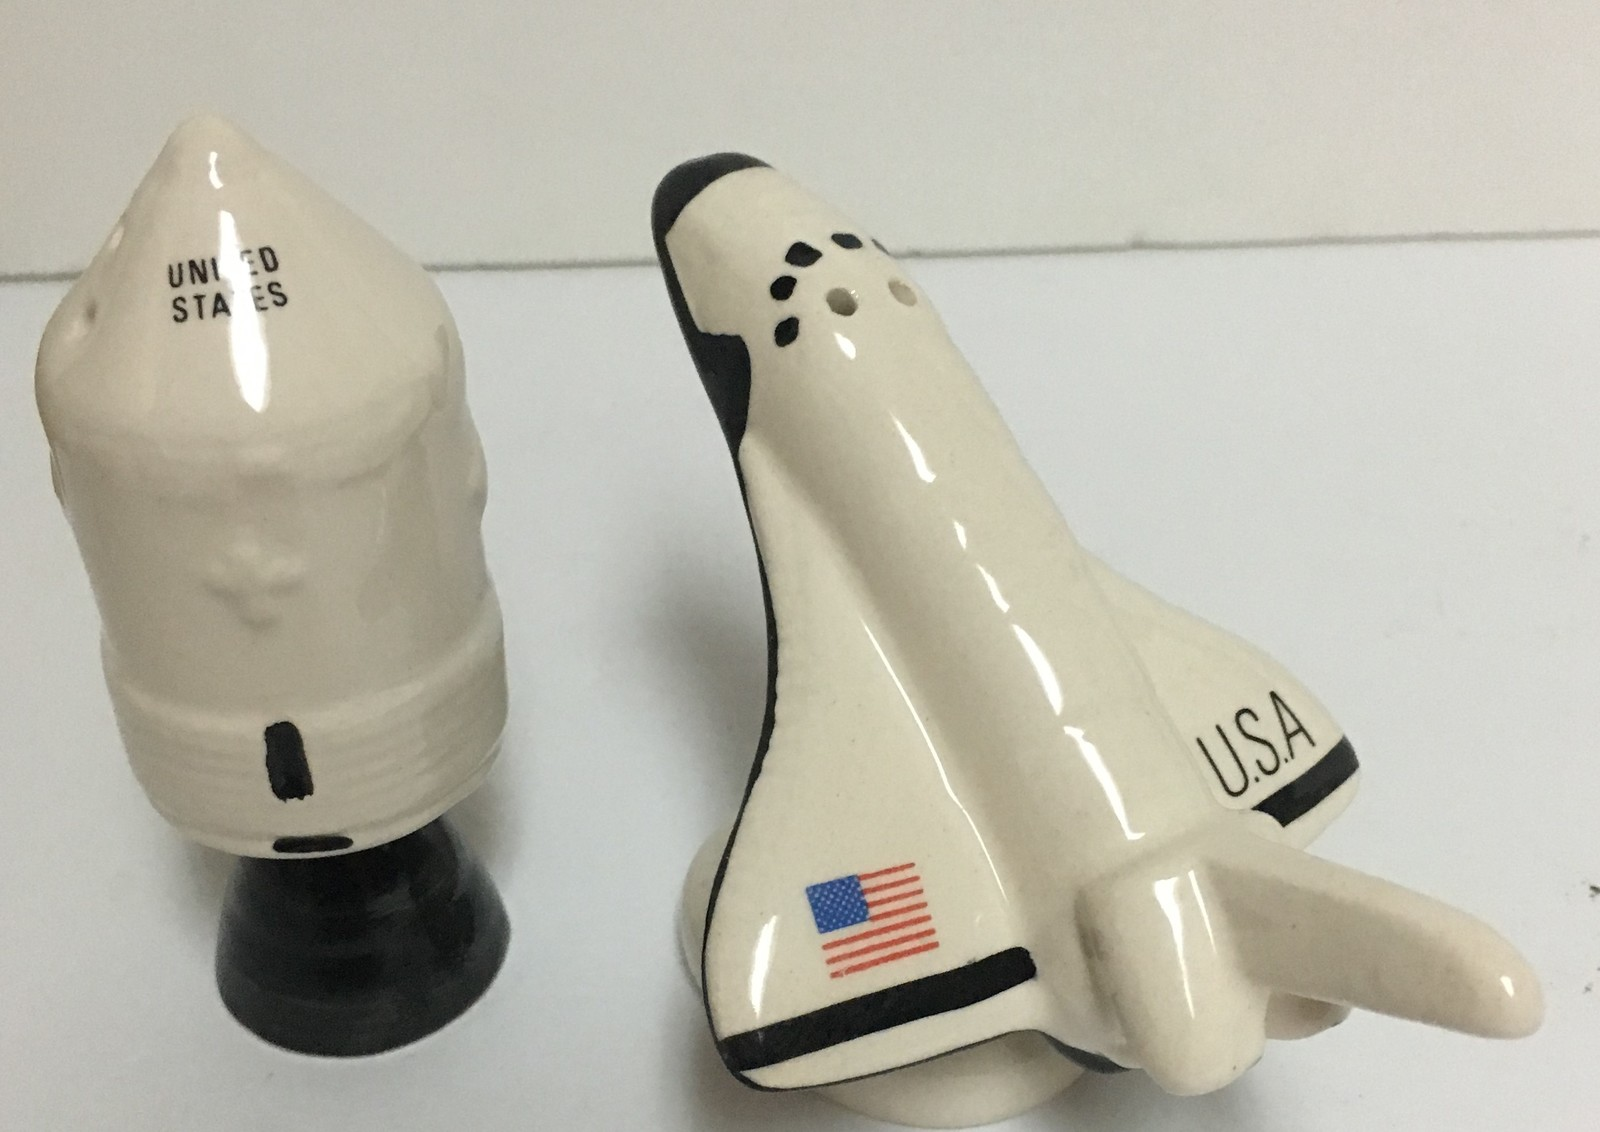 Space Shuttle & Capsule Collectibles Salt & Pepper Shakers